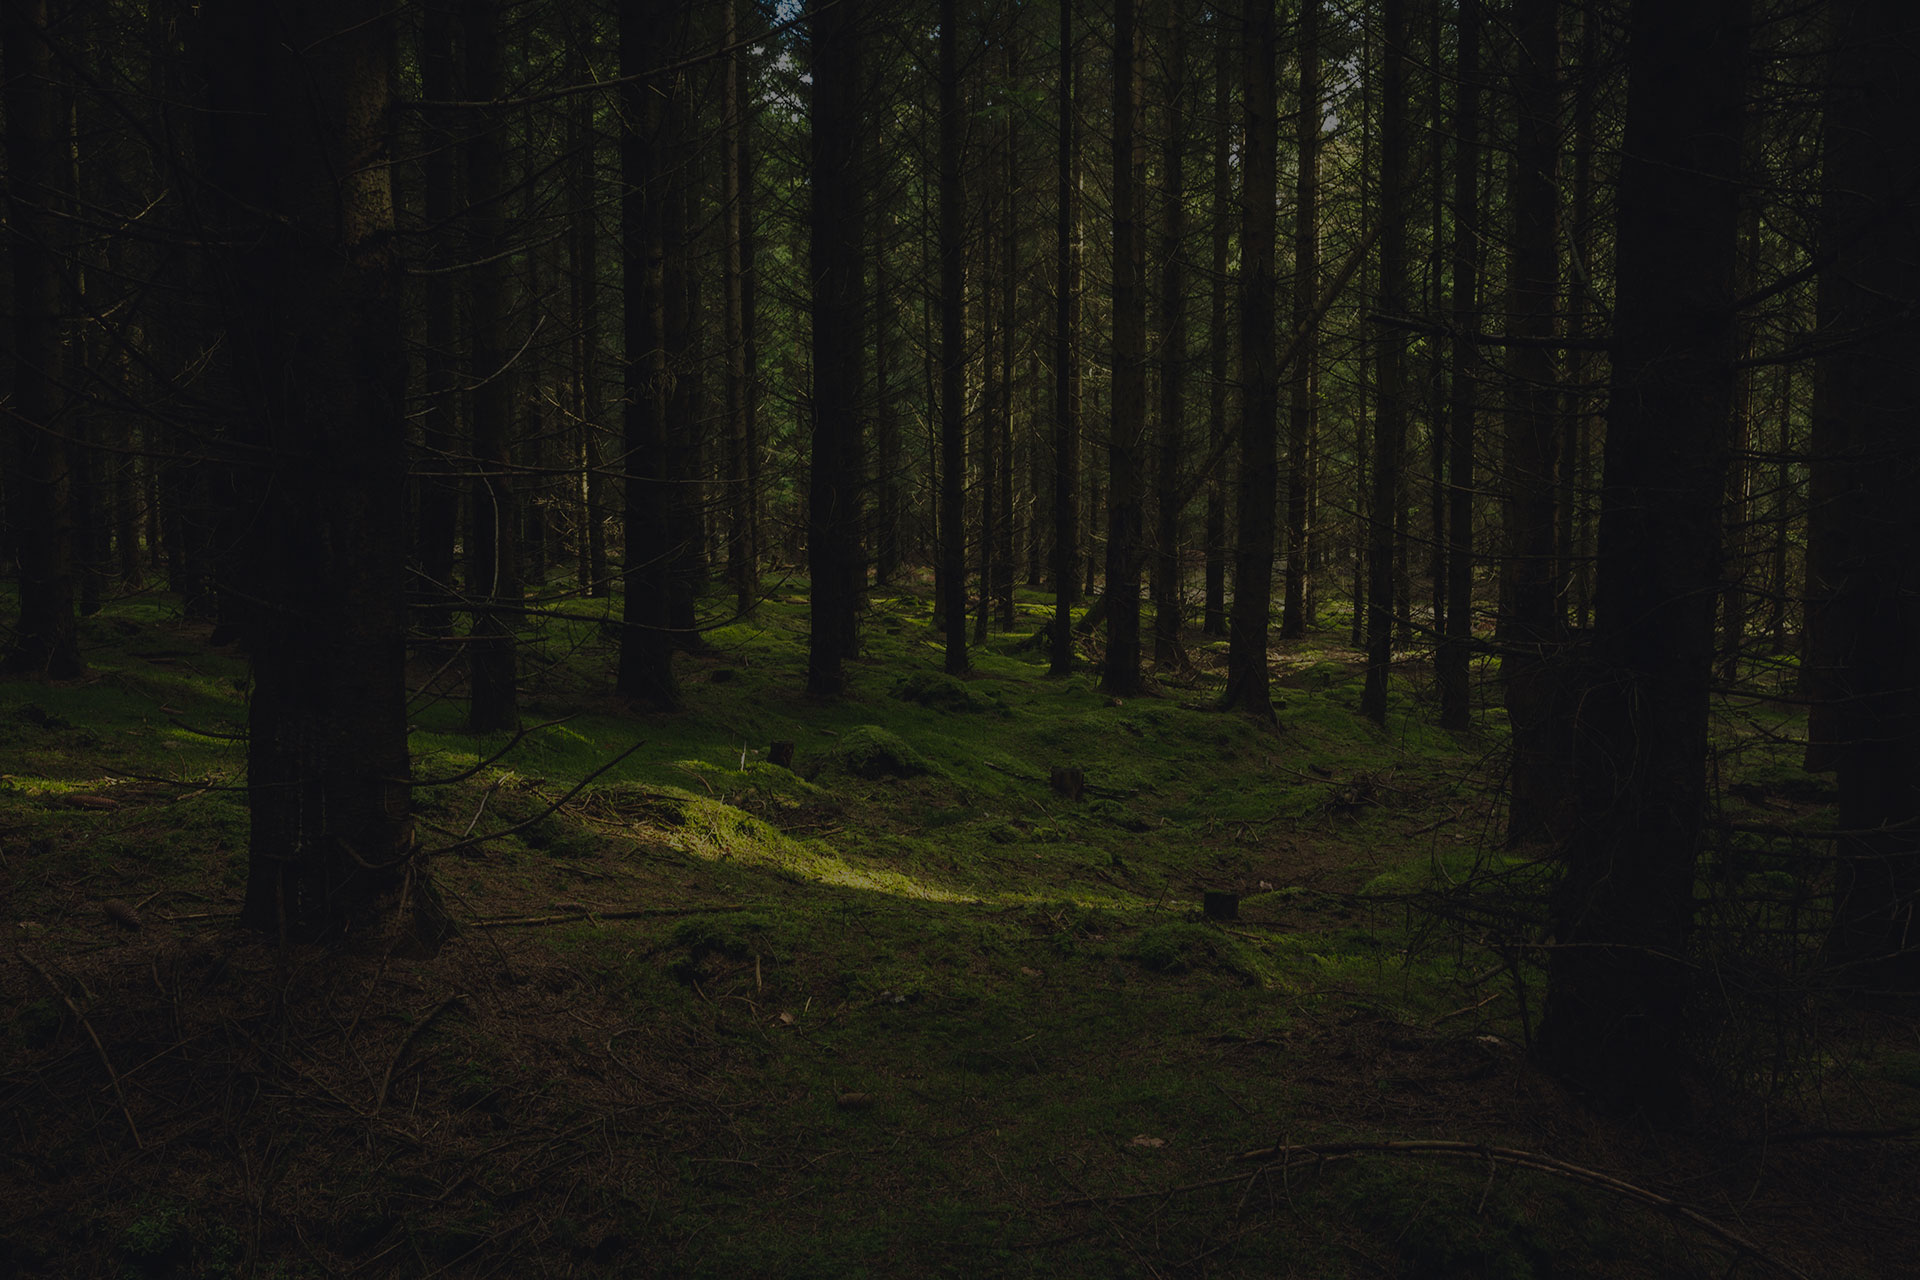 Rays of sun through the thick forest